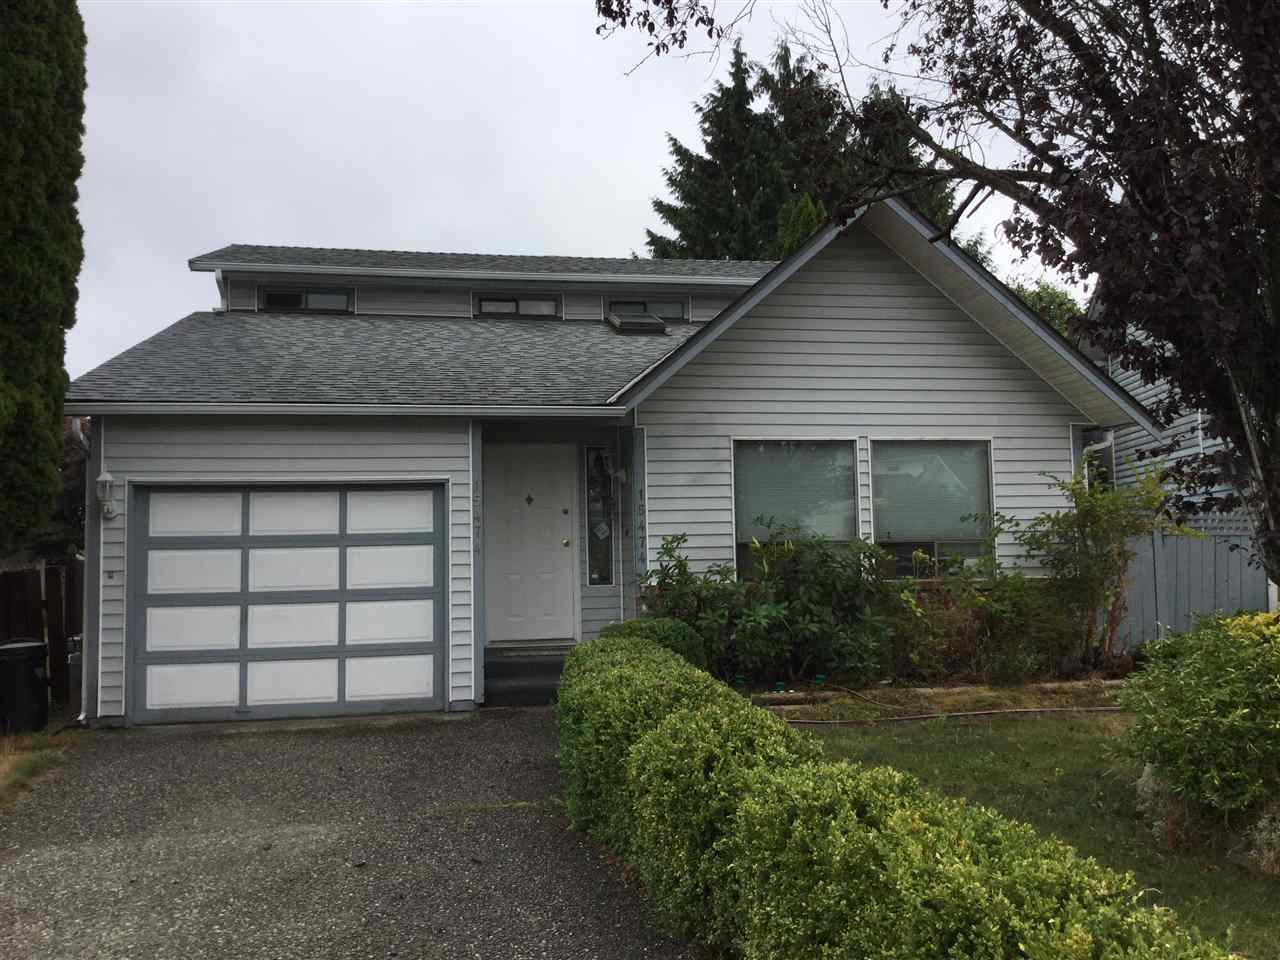 House for sale at 15474 90 ave surrey british columbia